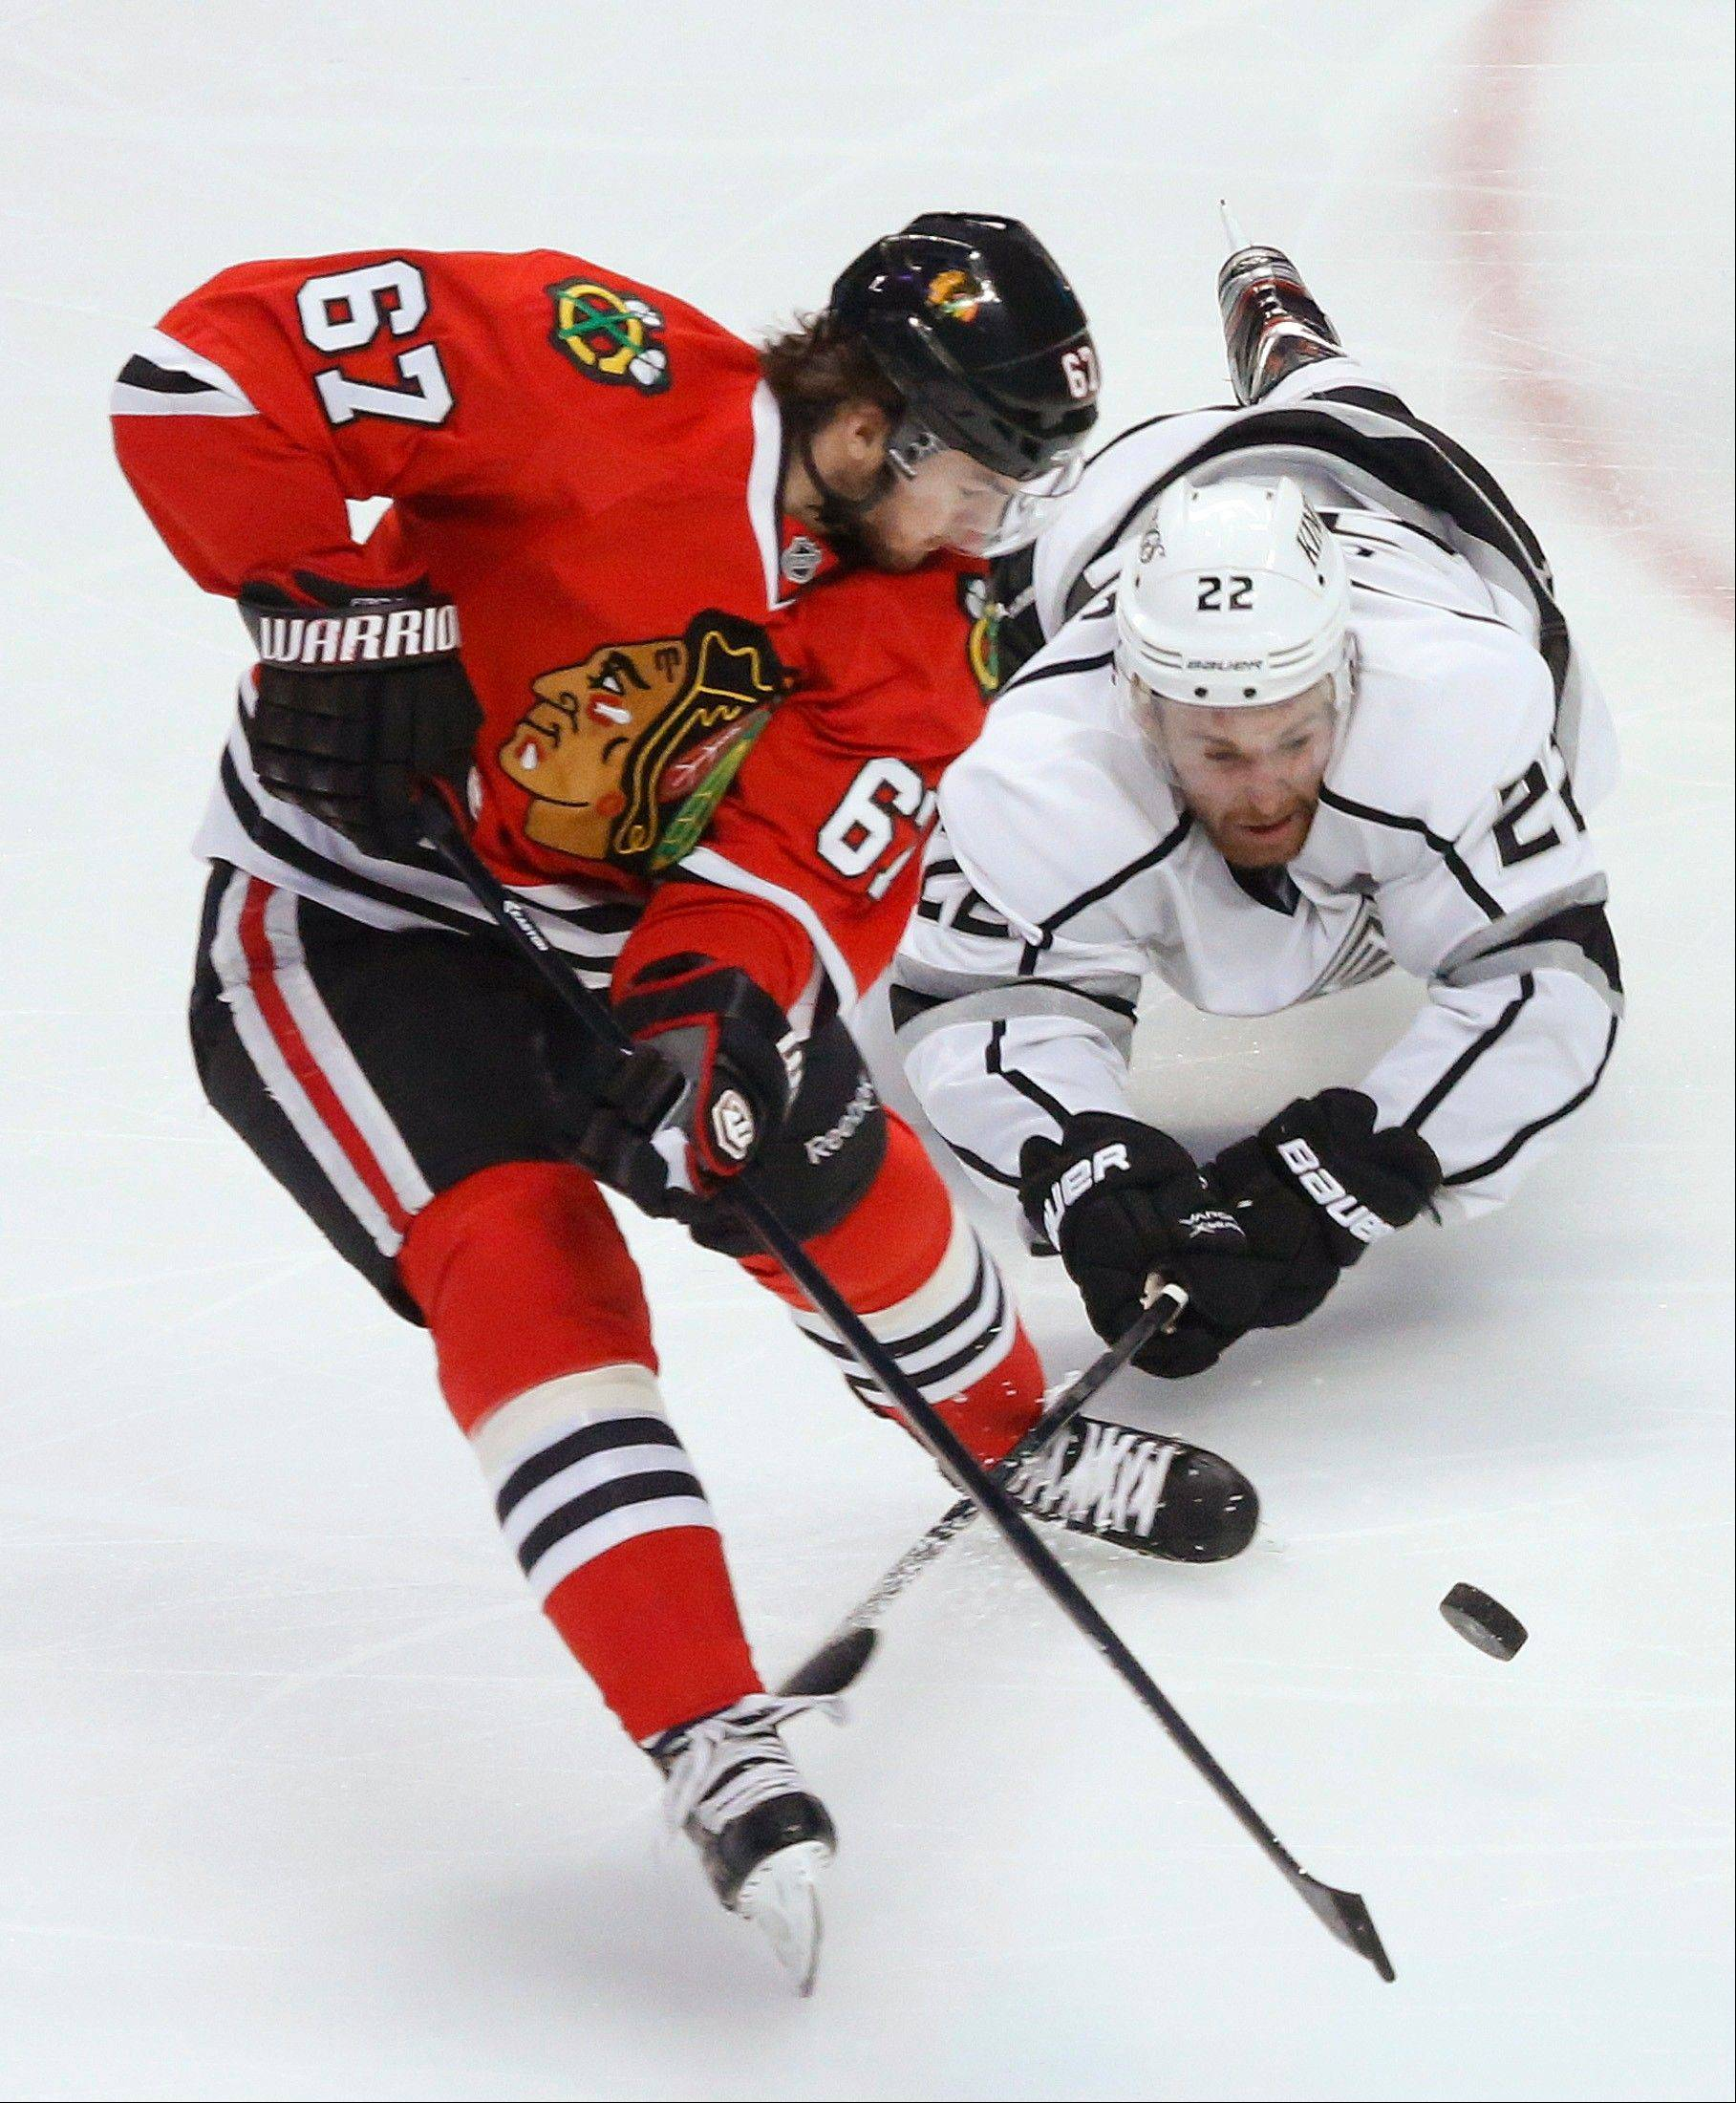 Los Angeles Kings center Trevor Lewis (22) dives for the puck against Chicago Blackhawks center Michael Frolik (67) during the second period of Game 1 of the NHL hockey Stanley Cup Western Conference finals, Saturday, June 1, 2013, in Chicago.